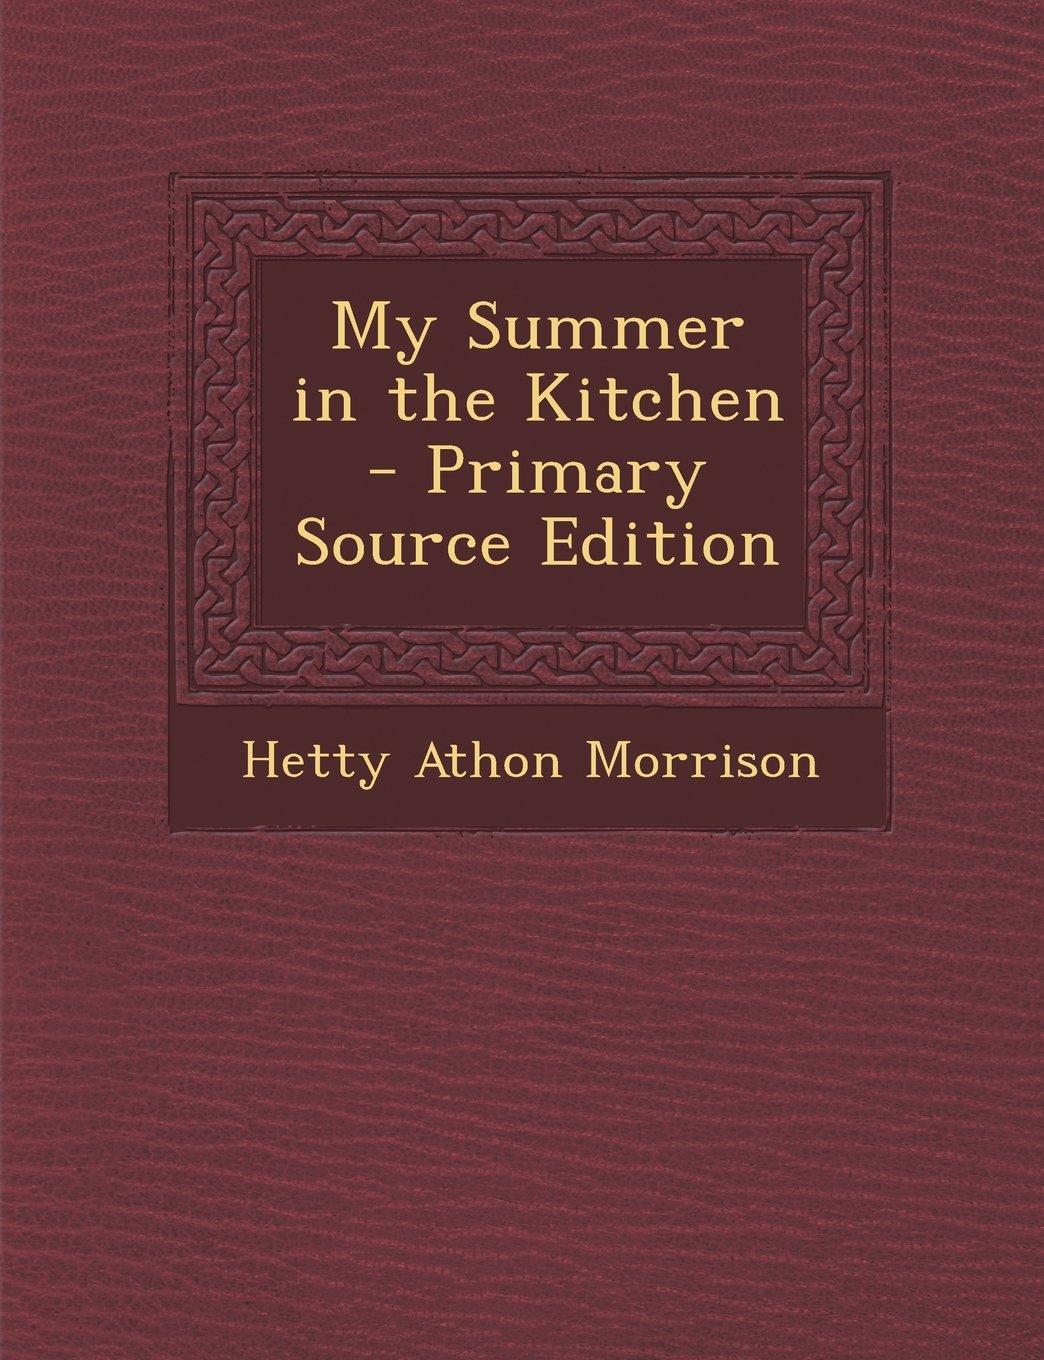 Download My Summer in the Kitchen - Primary Source Edition ebook